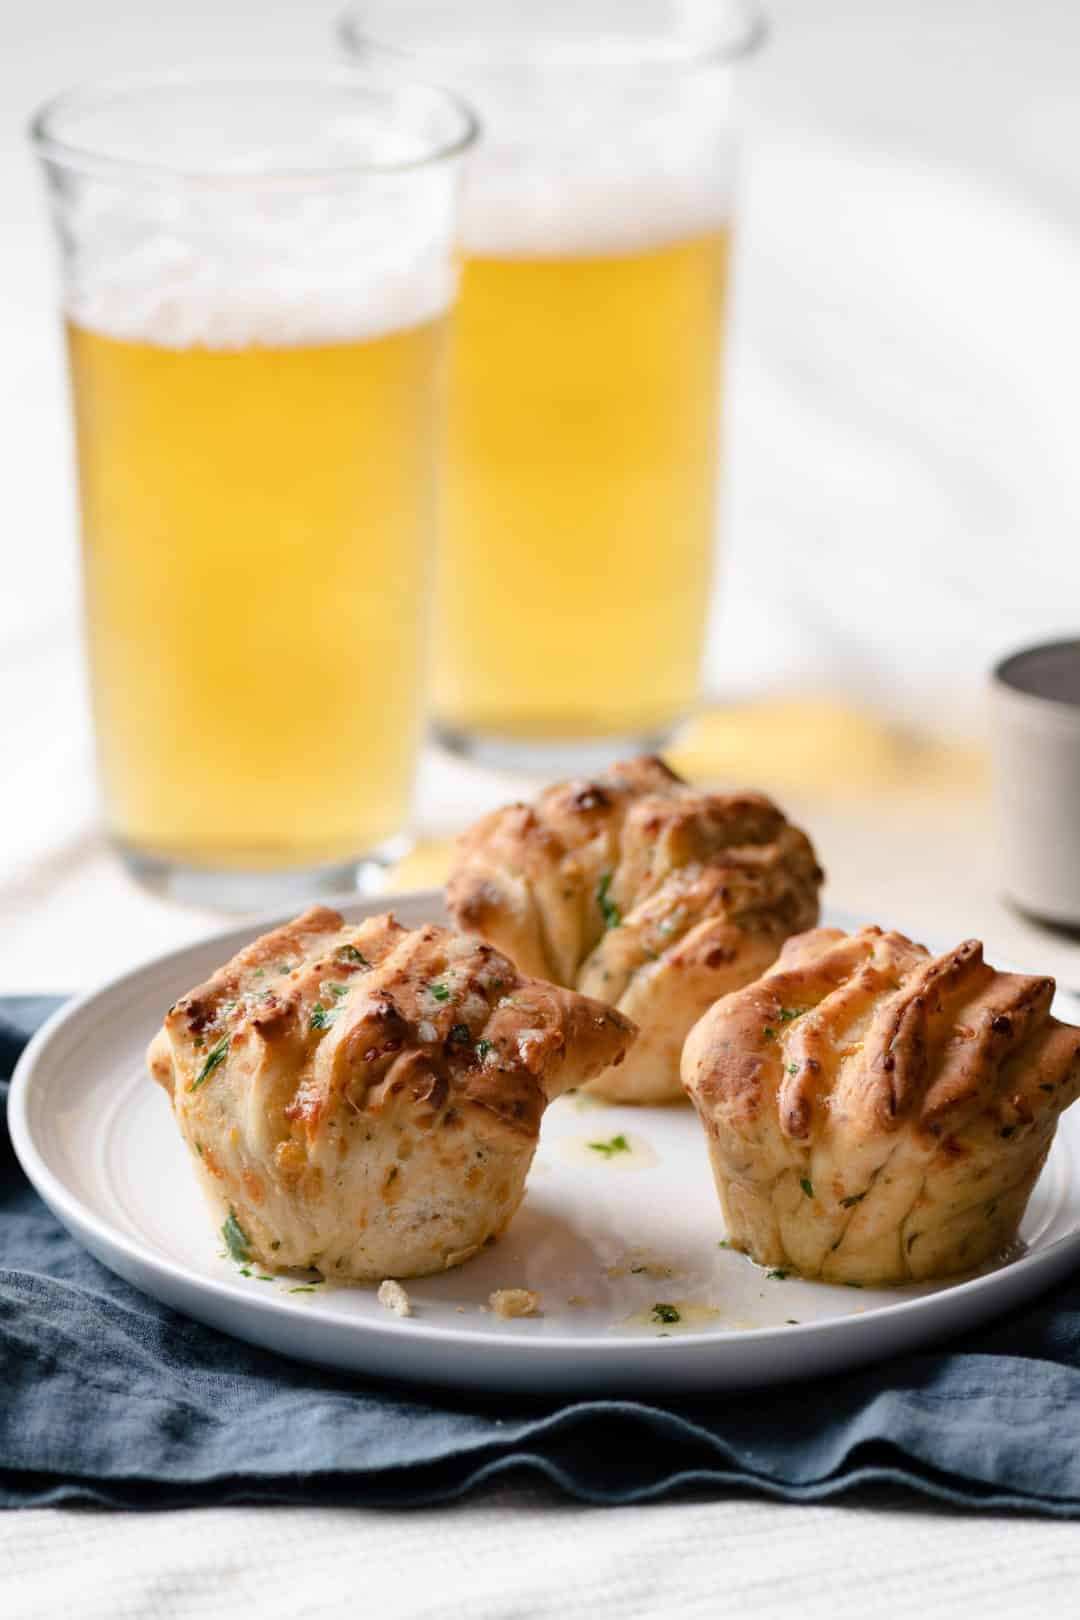 Beer Bread Fantail Muffins served with pilsner beer